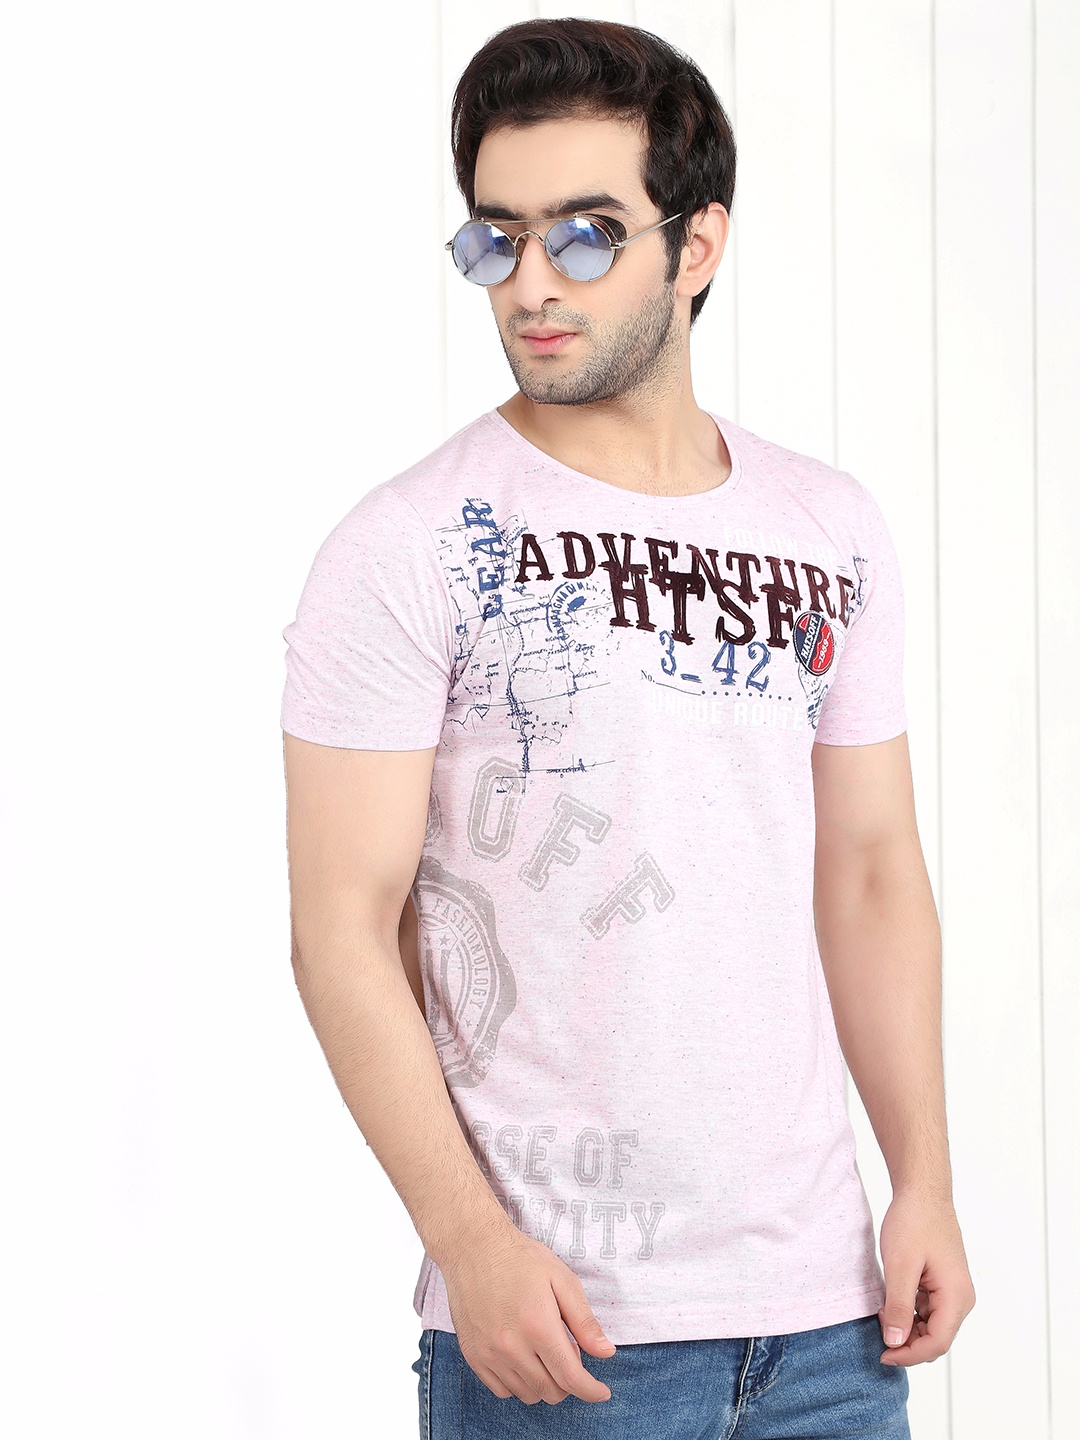 Hats Off Printed Pink Cotton Slim Fit T Shirt G3 Mts4652